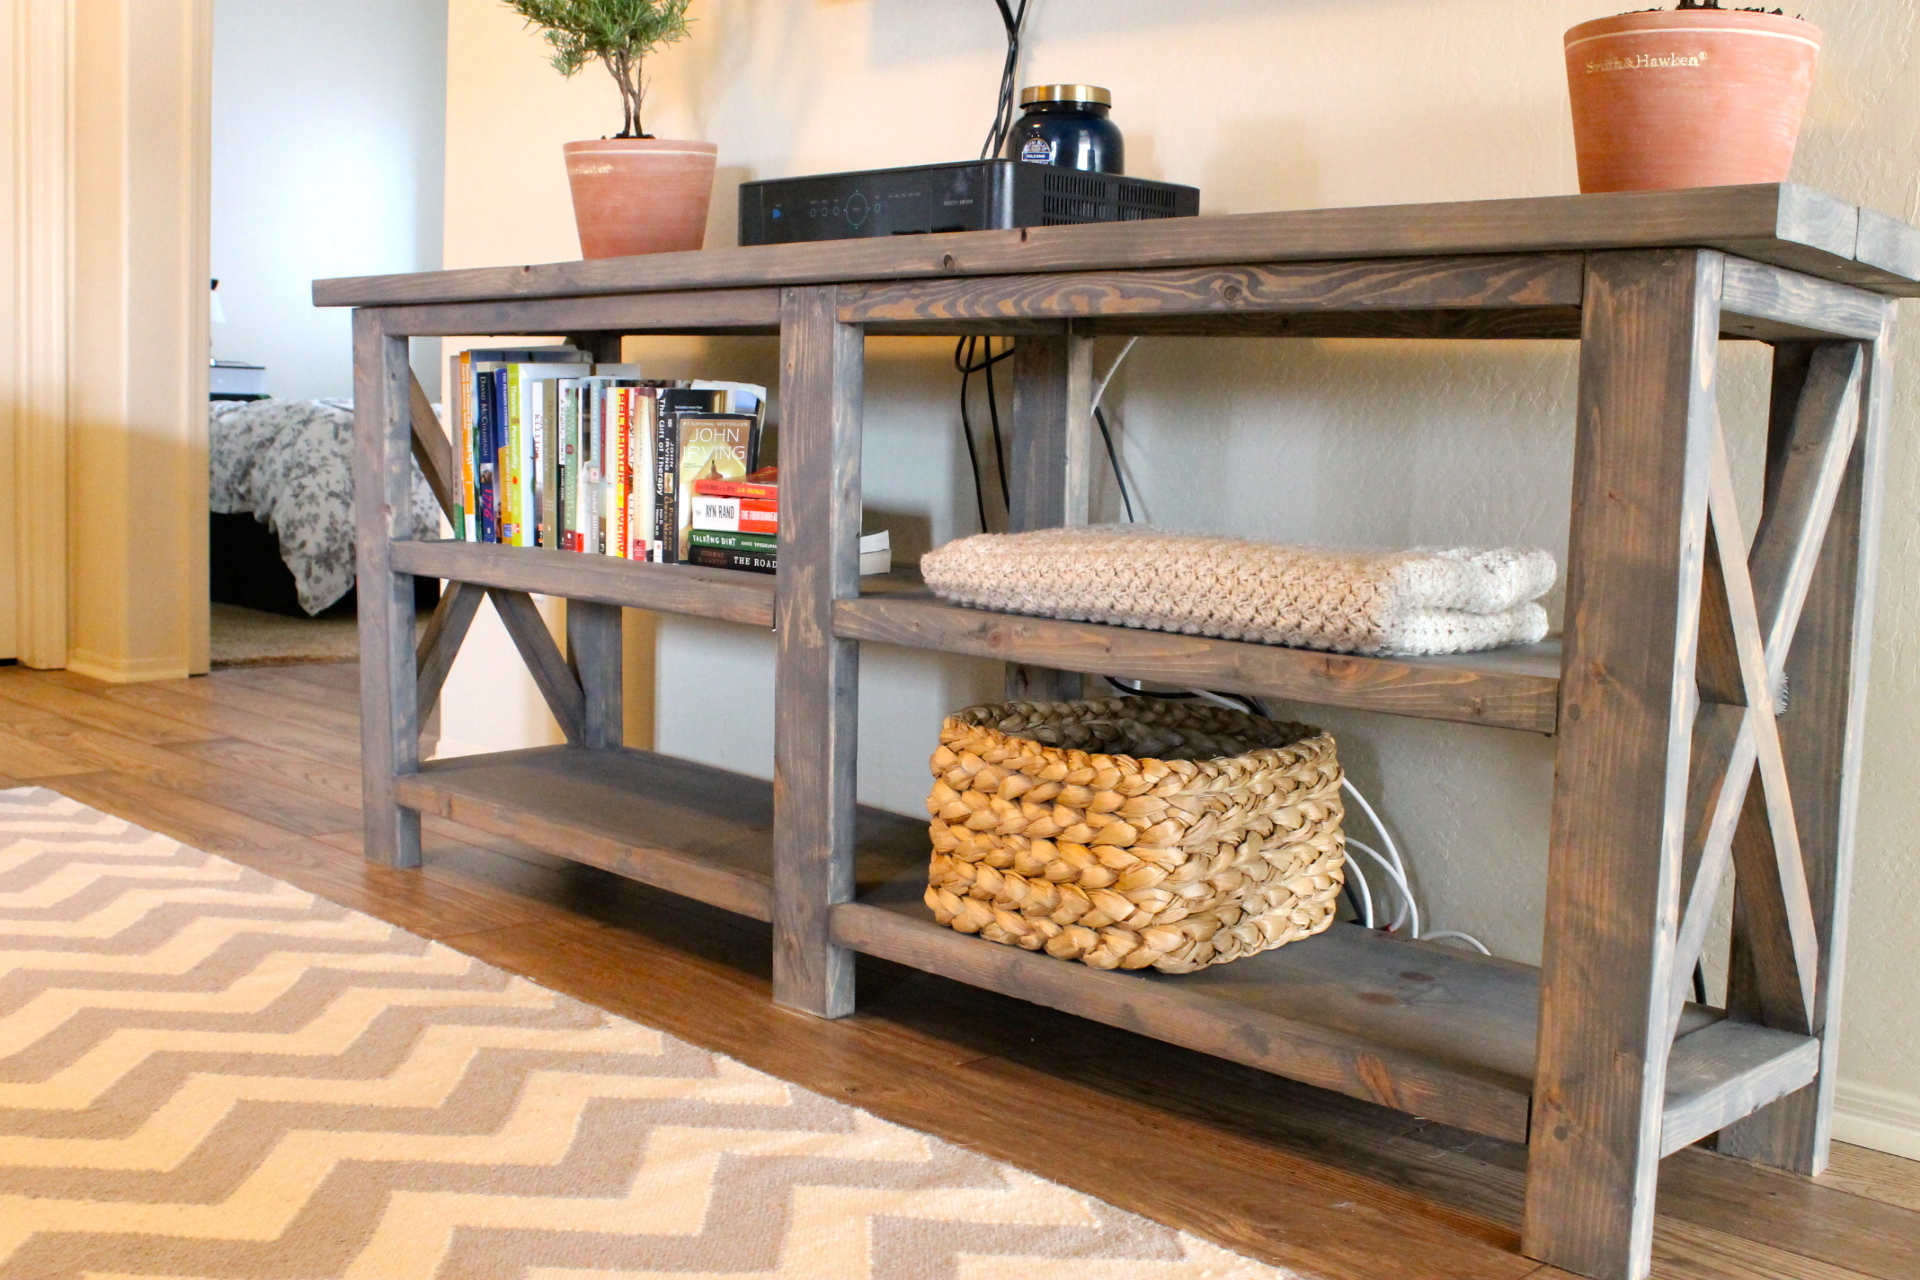 make a rustic sofa table most comfortable convertible bed x console me three shelves are little bare i know plan on crocheting few more